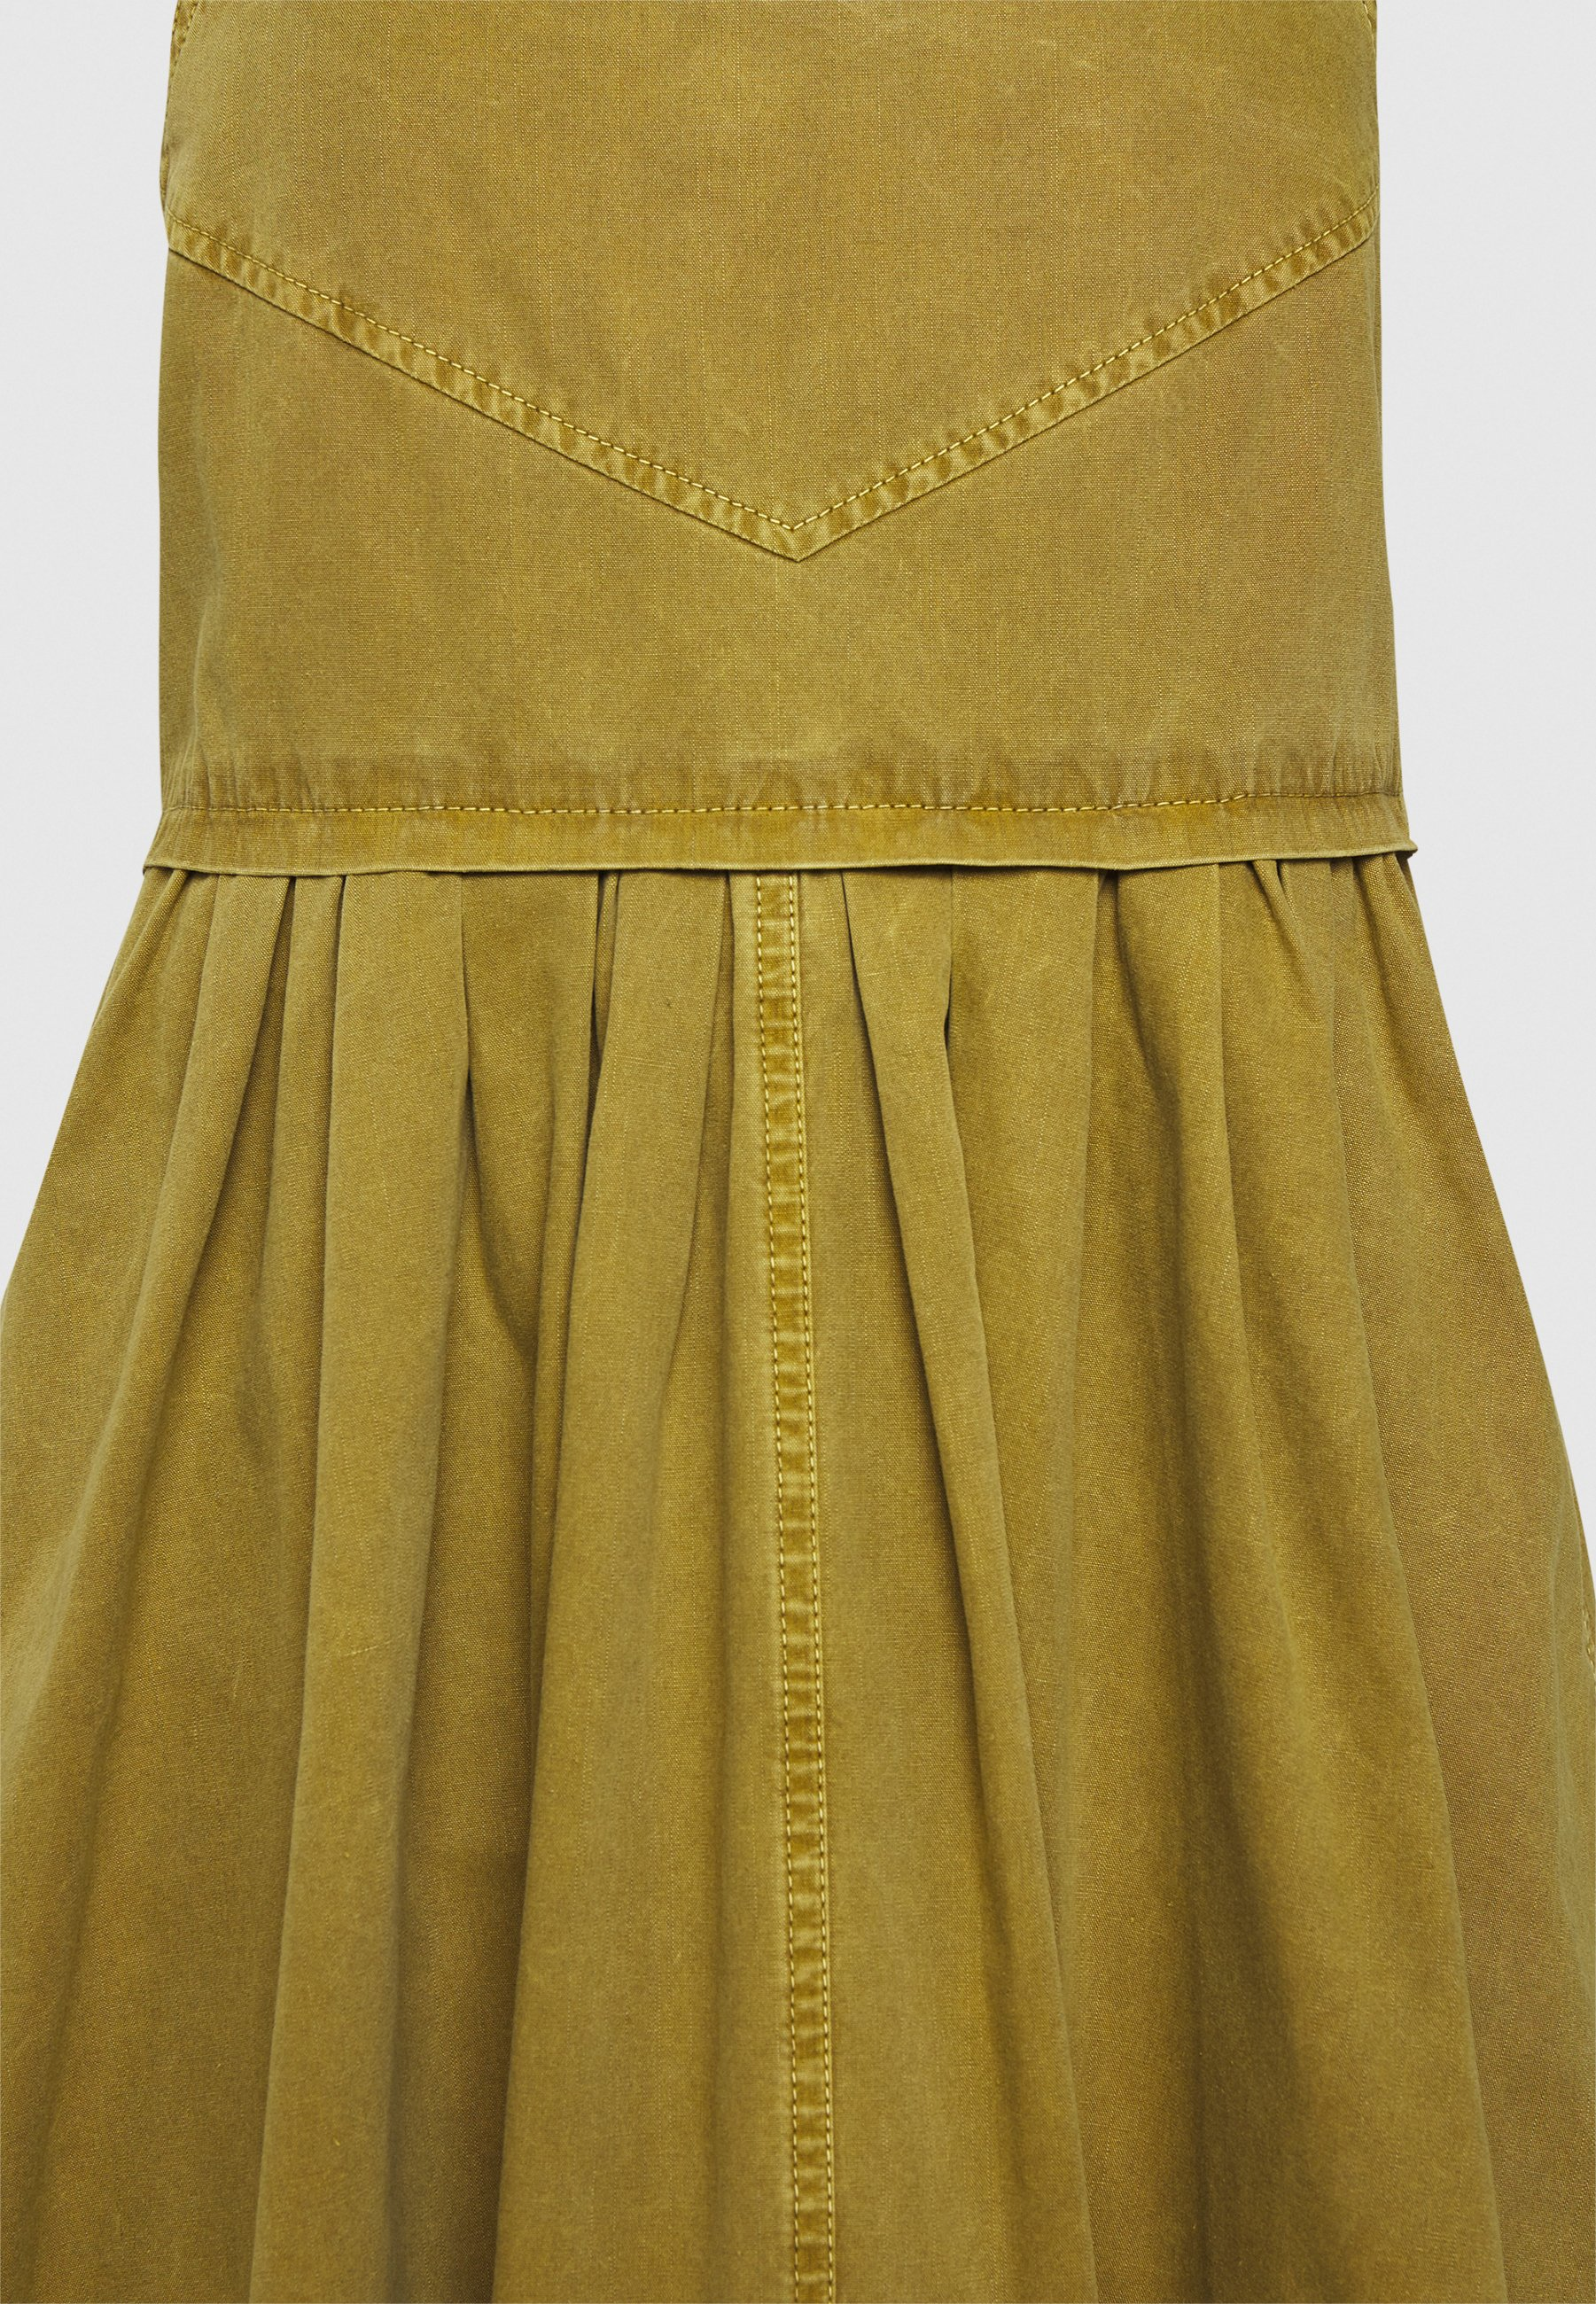 Get The Latest Fashion Women's Clothing Proenza Schouler WASHED APRON DRESS Day dress moss axmw3hg99